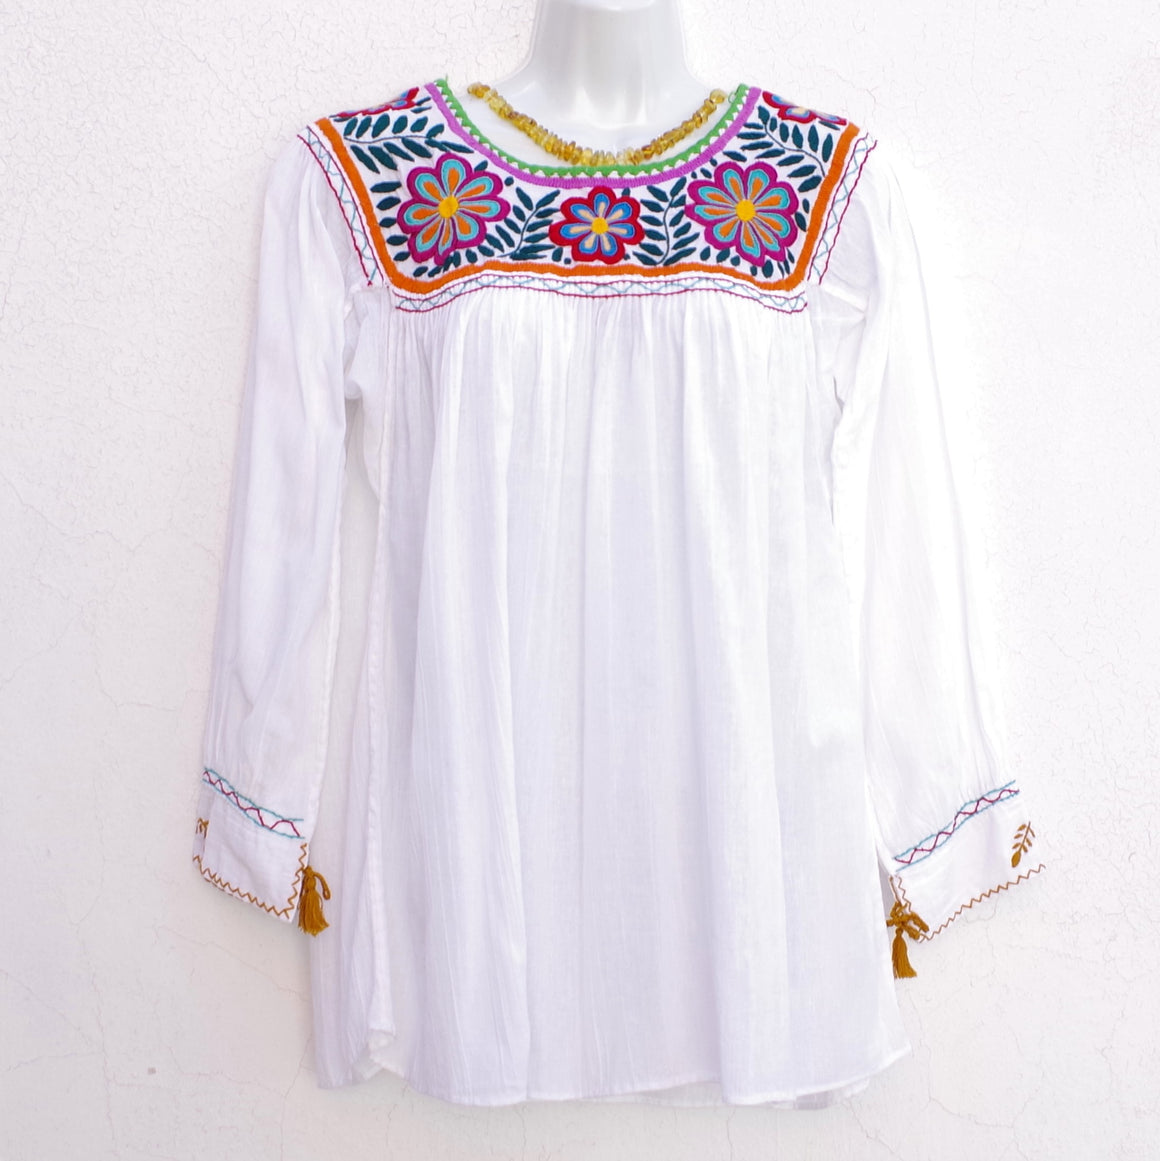 Mayan Copal White Mexican Huipil Round Neck Blouse with Multi color Flower Hand Embroidery from Chiapas M Size